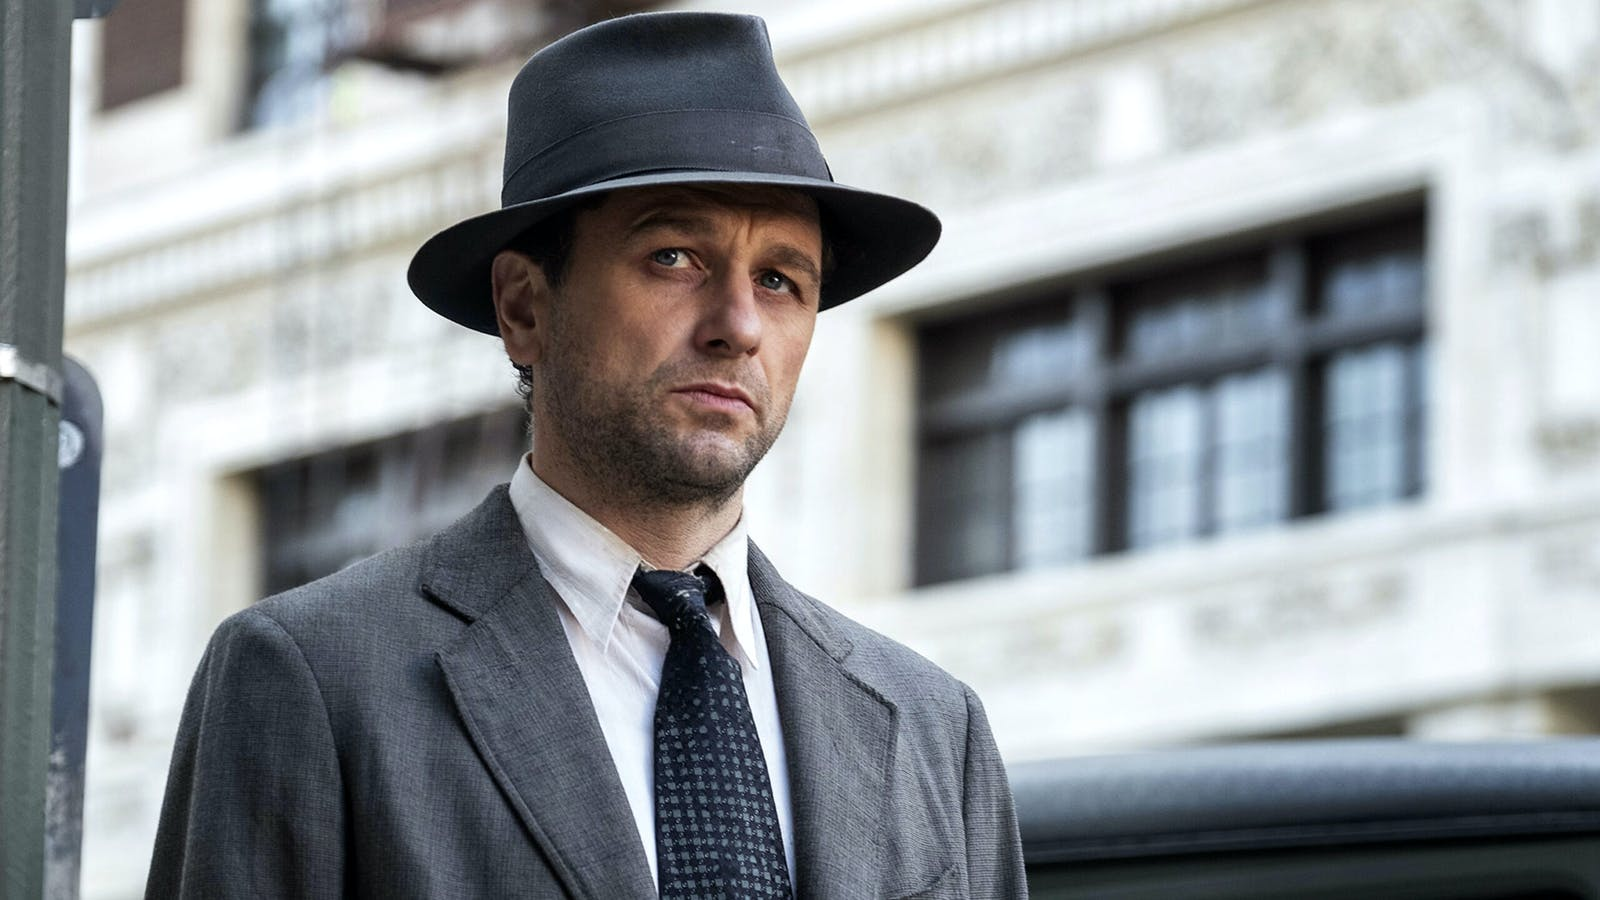 The actor Matthew Rhys, who plays the lead role in HBO's Perry Mason. Photo by HBO